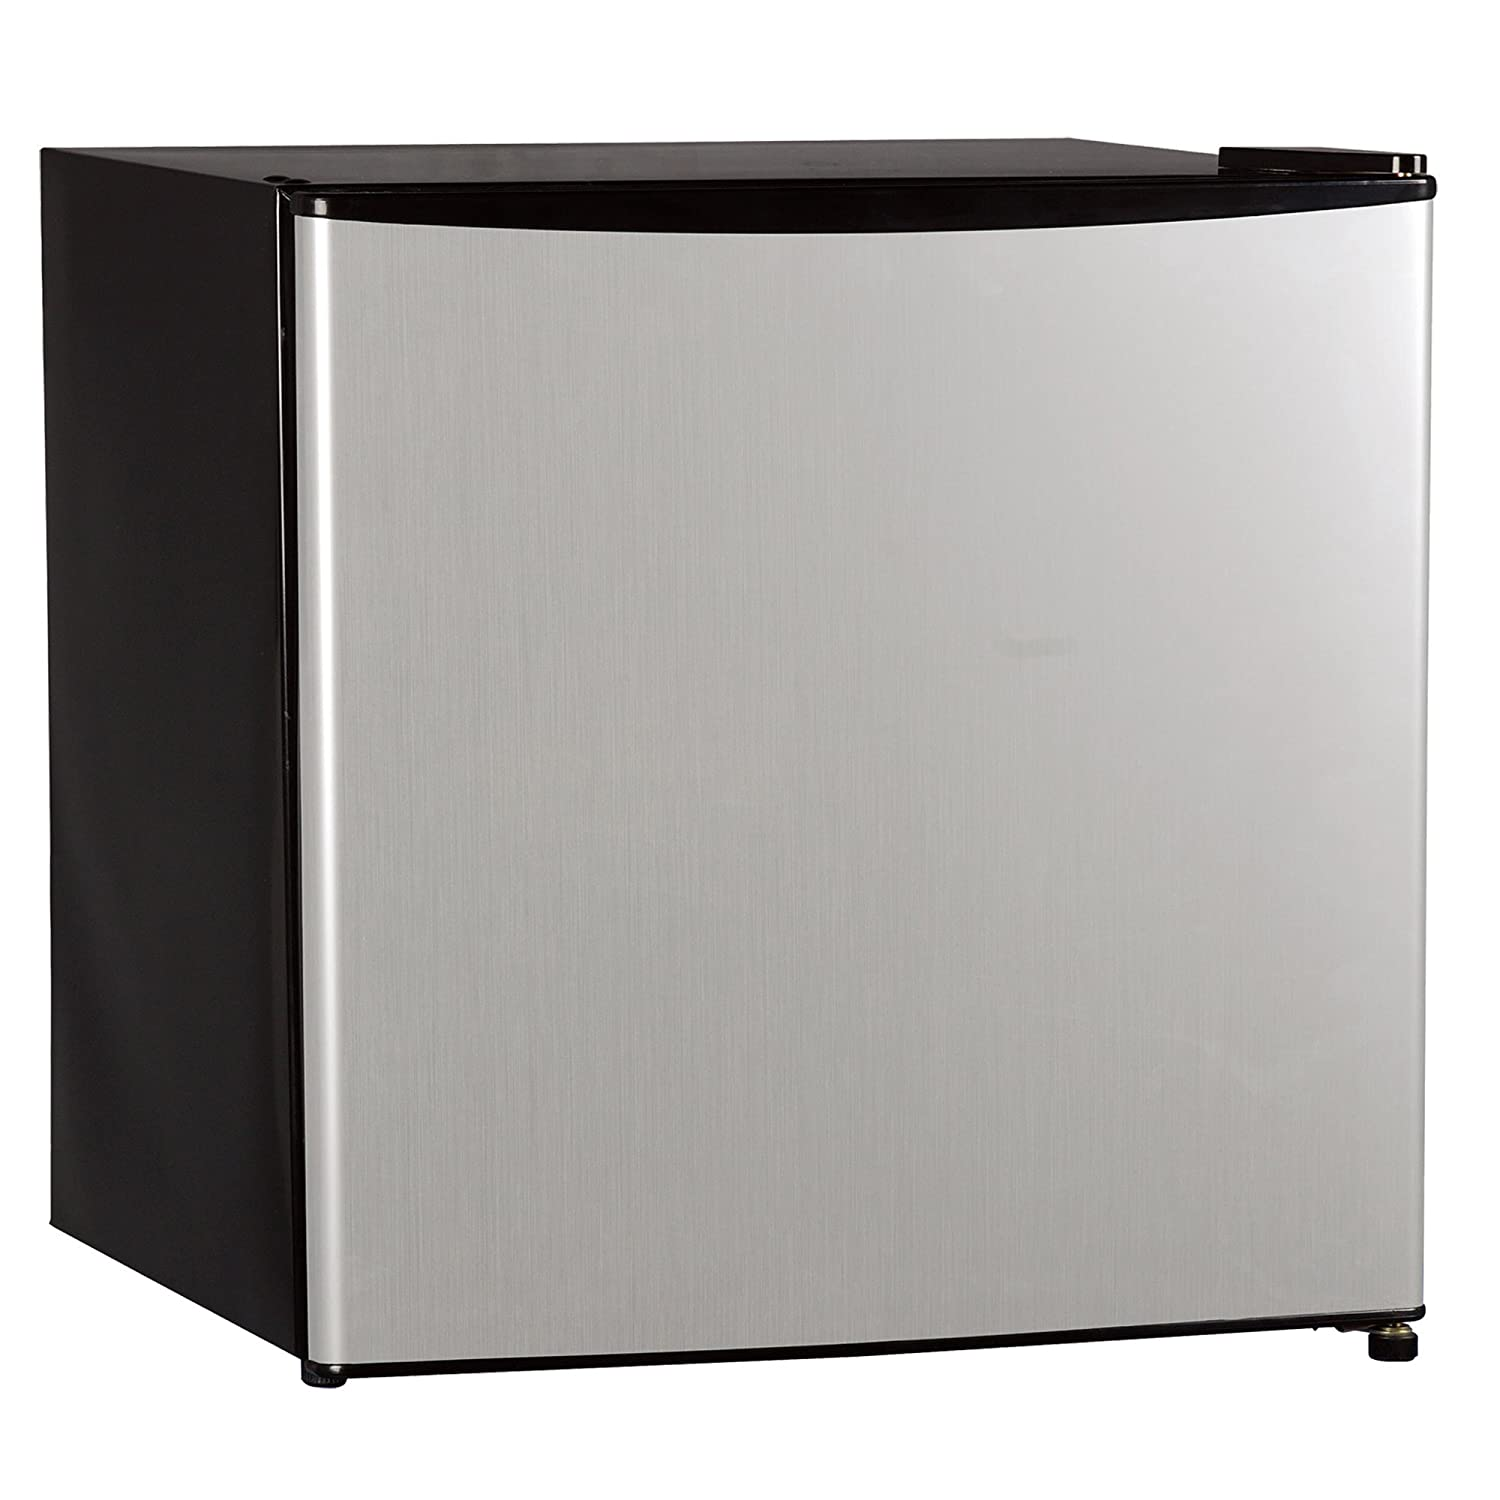 drawer with series upright a commercial single section freezer refrigerator door fge full pin glass and the